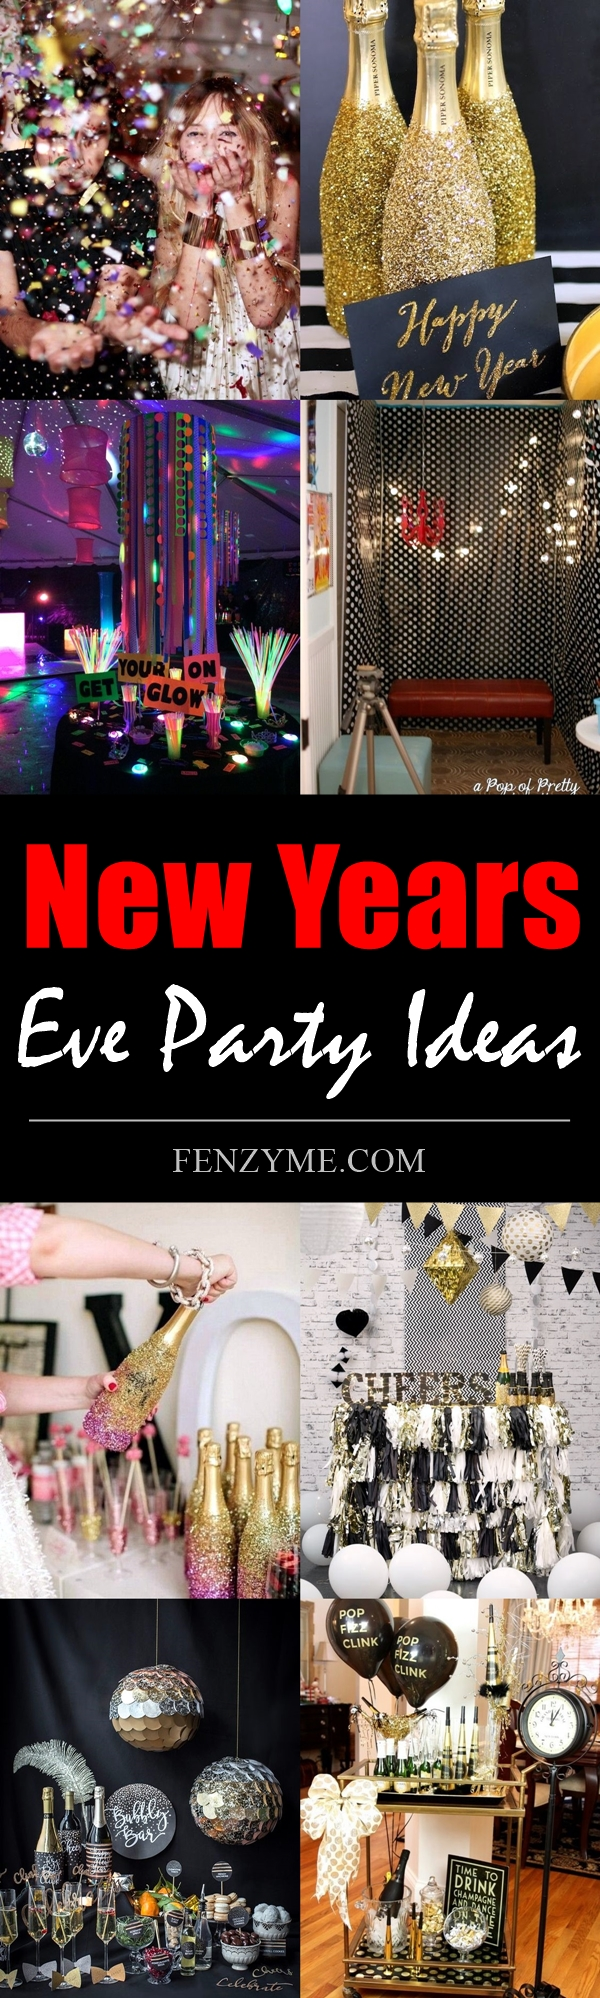 new-years-eve-party-ideas-1-tile